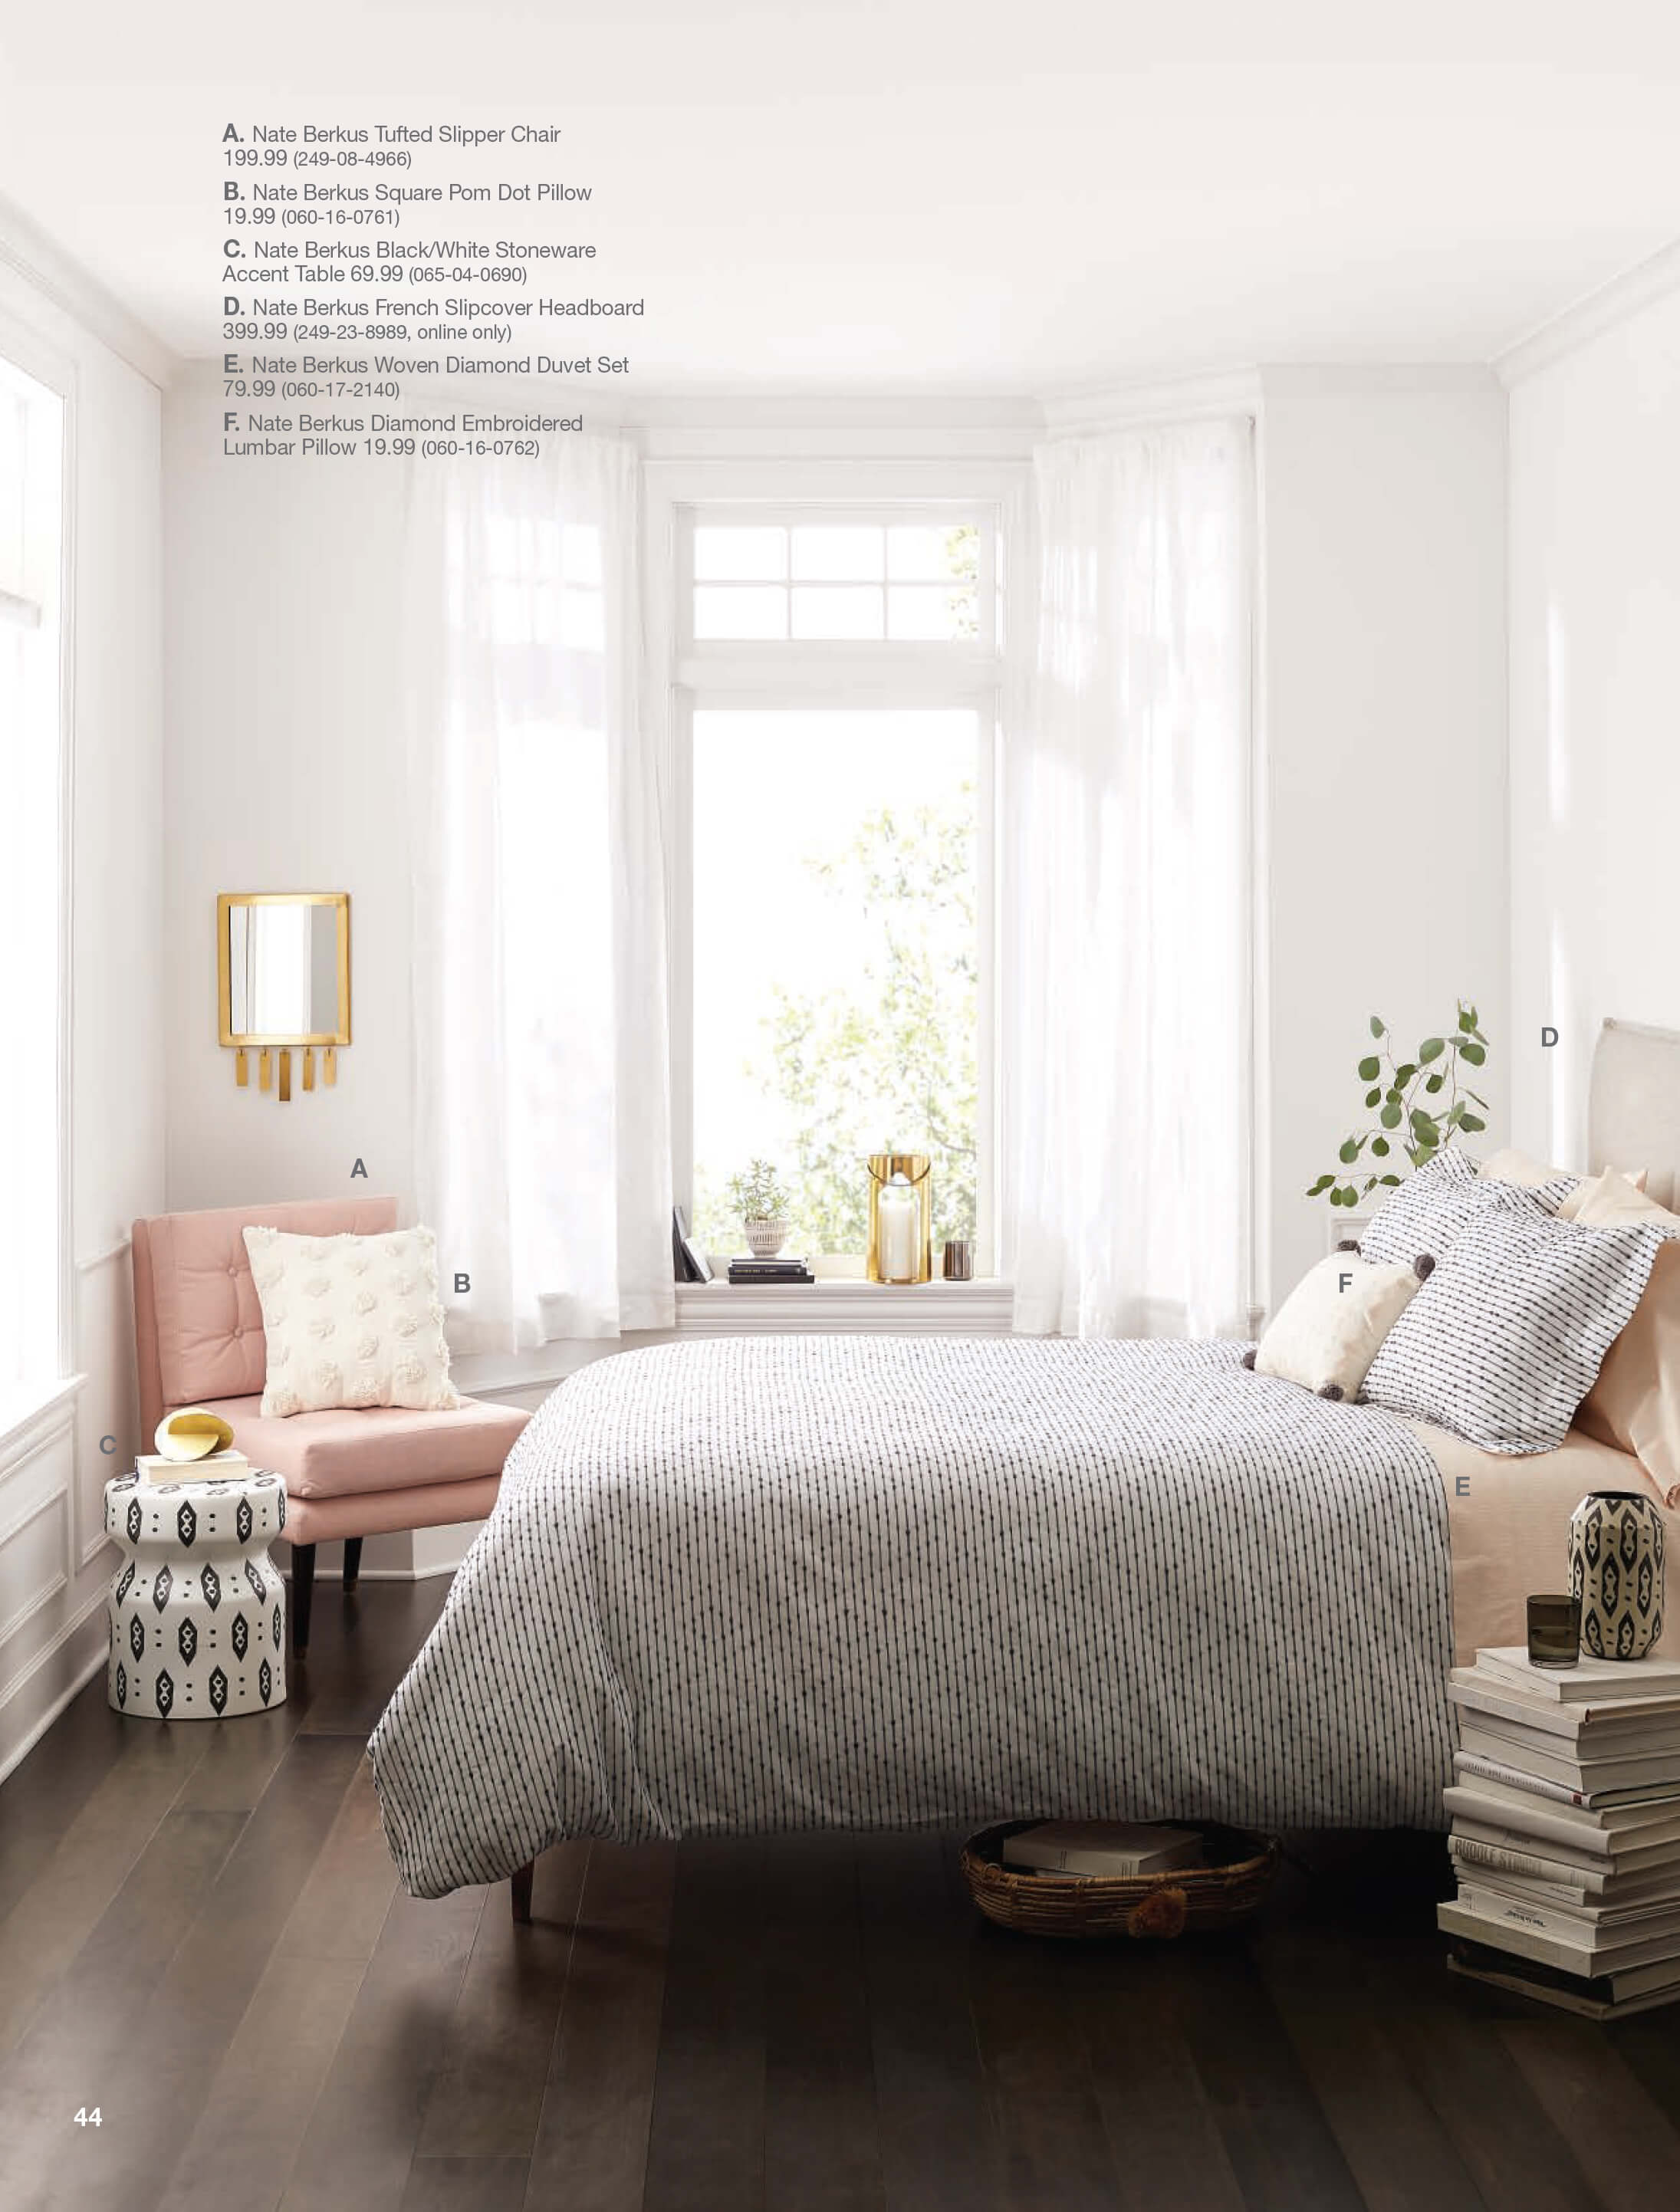 new target home product and emily henderson first look spring catalog nate berkus round gold accent table with marble top antique black end tables bunk beds ashley furniture foyer